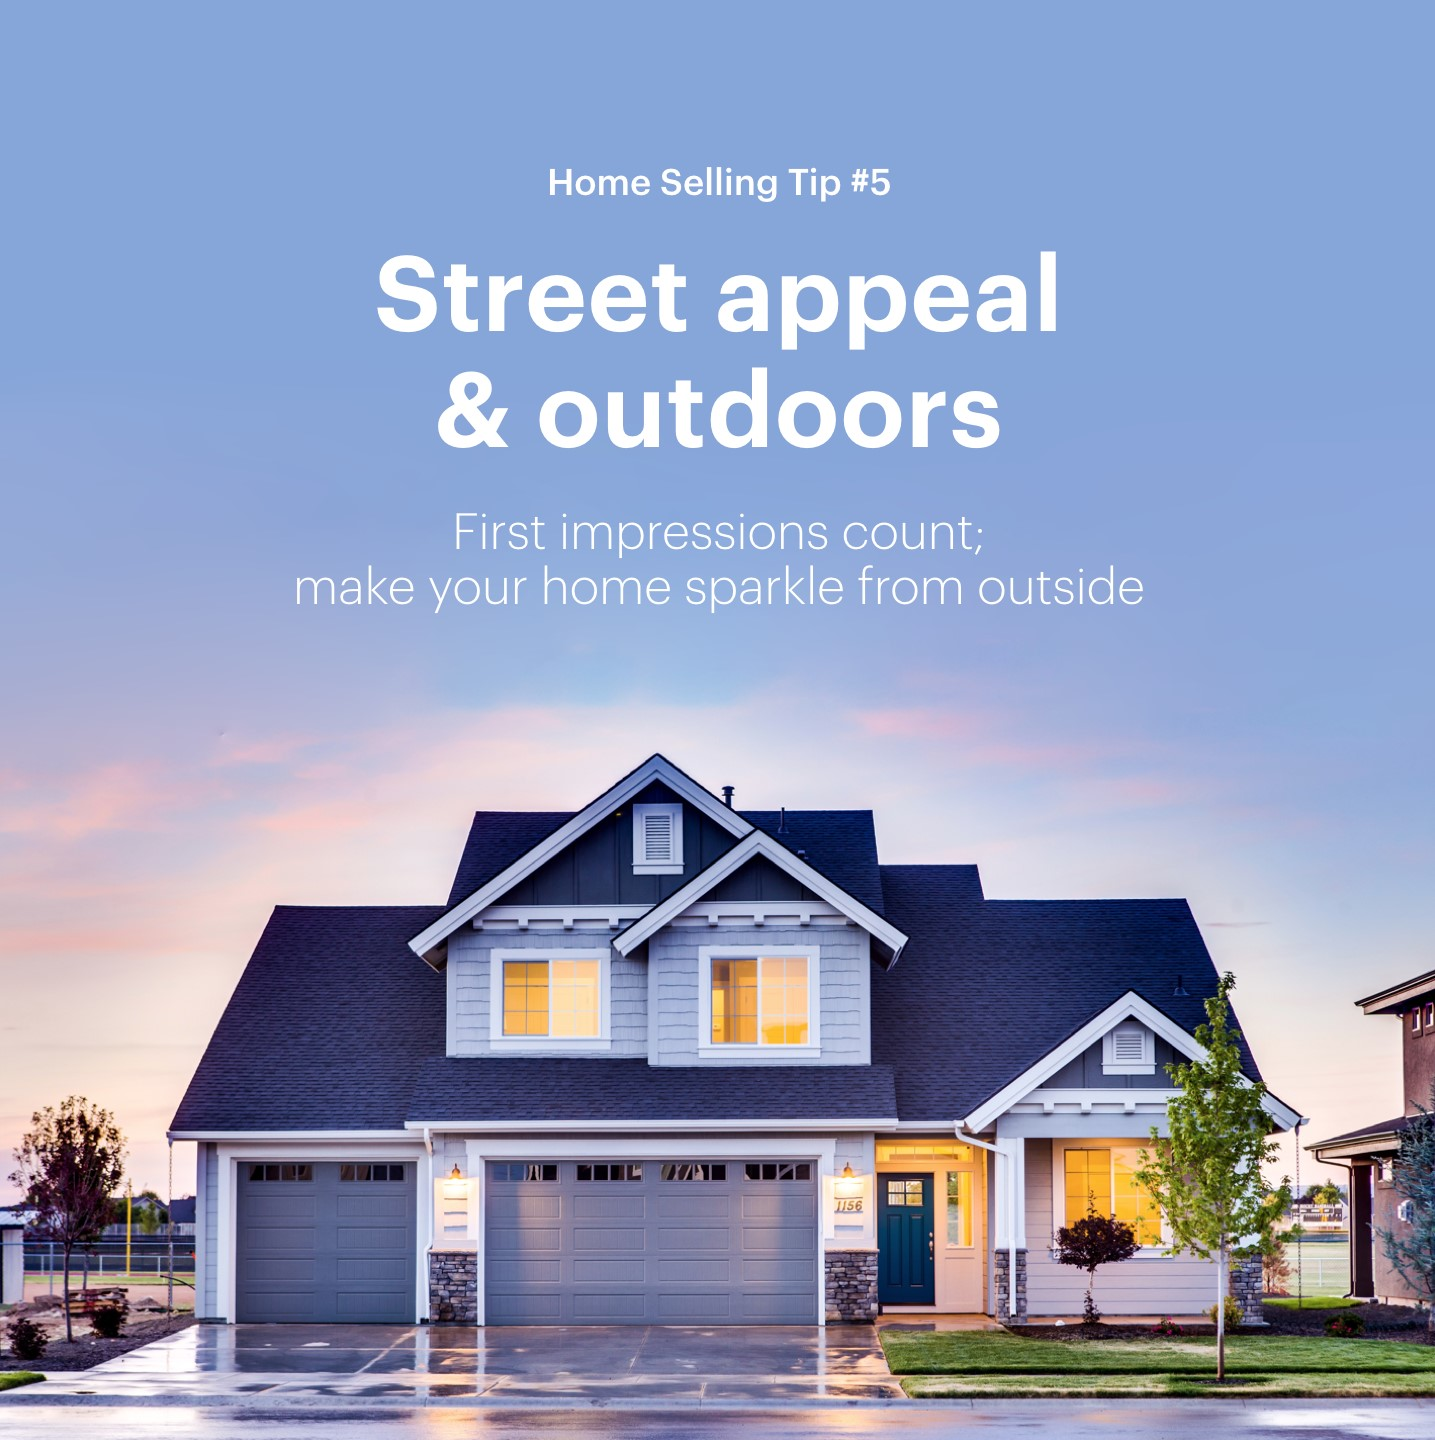 Home Selling Tip #5: Street Appeal & Outdoors